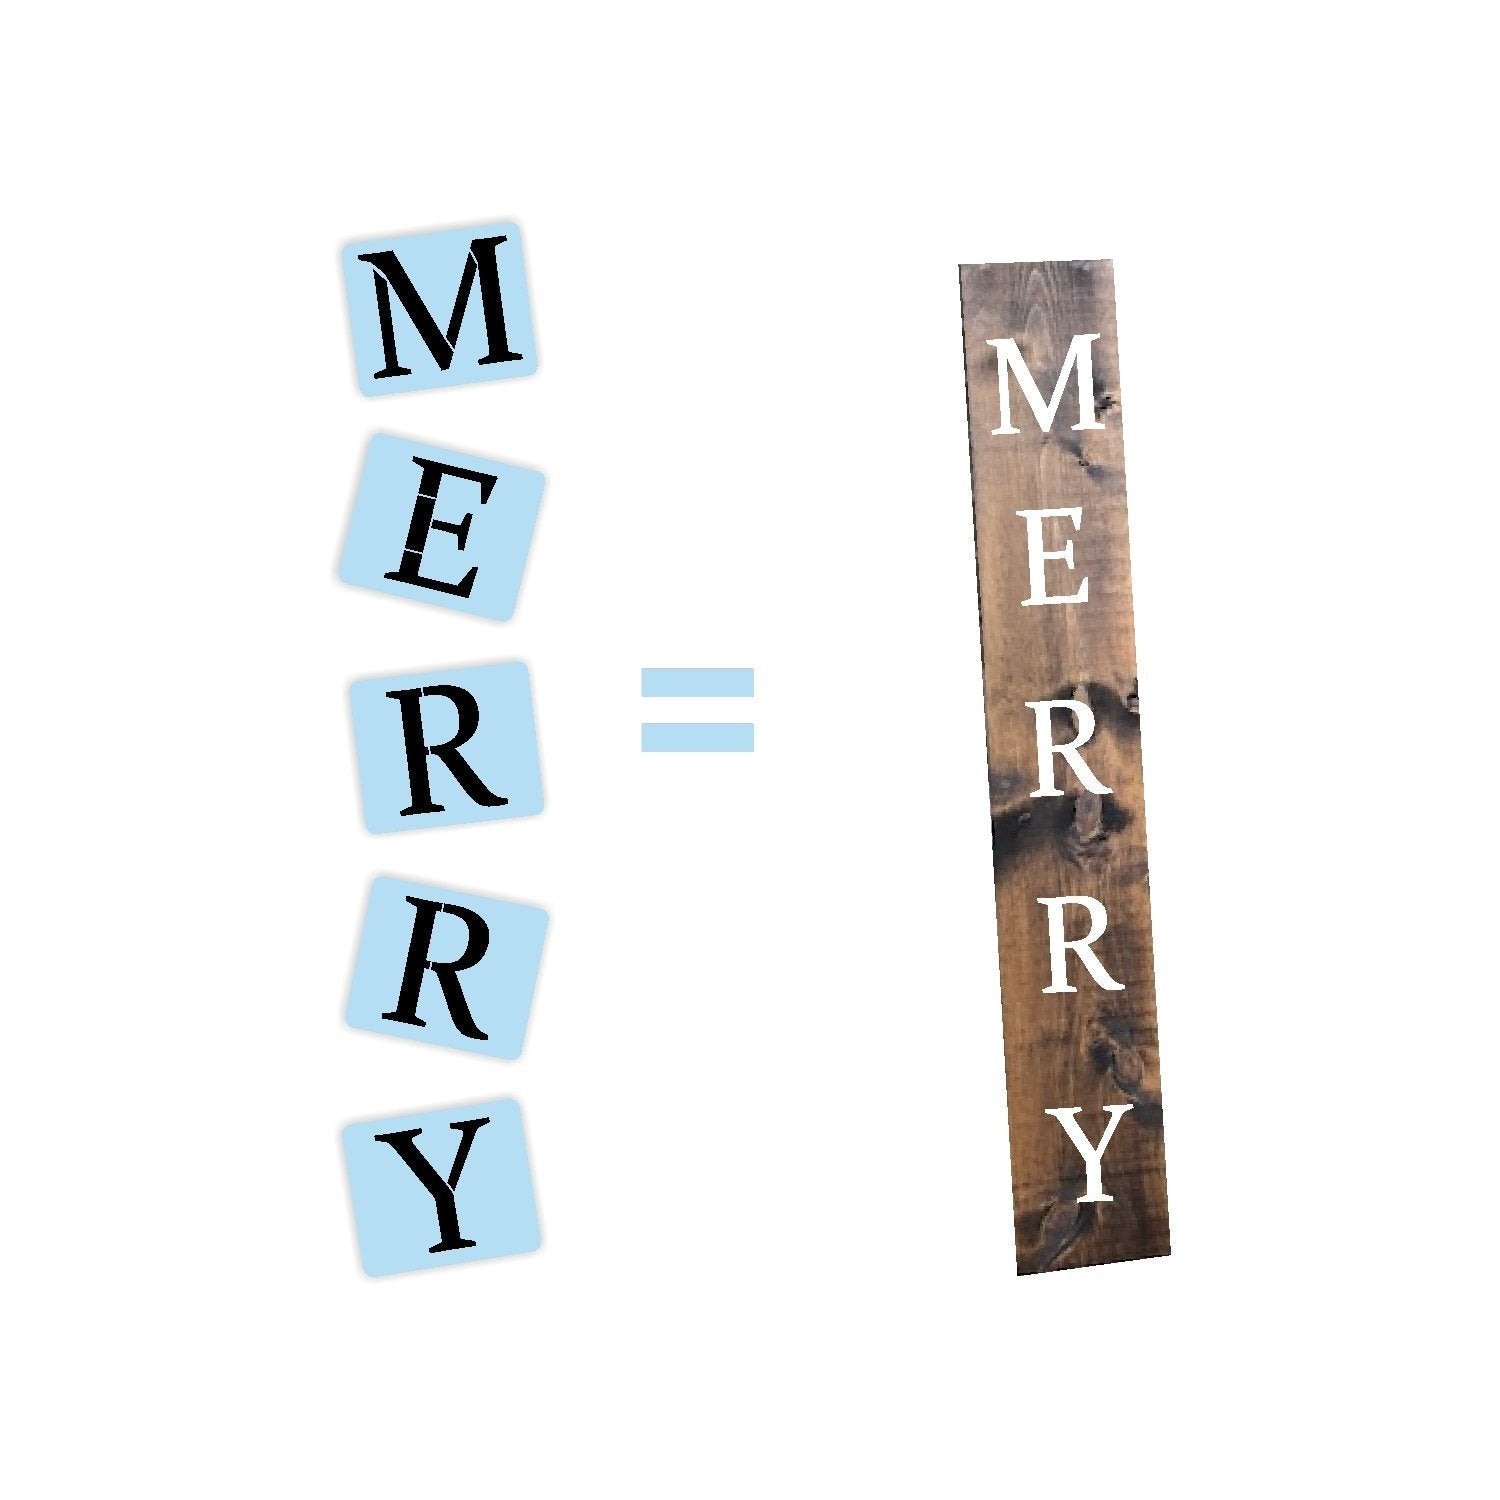 Merry Christmas Porch Stencil - Reusable - Holiday Stencil - Paint Your Own Wood Sign - Reusable Plastic Stencil